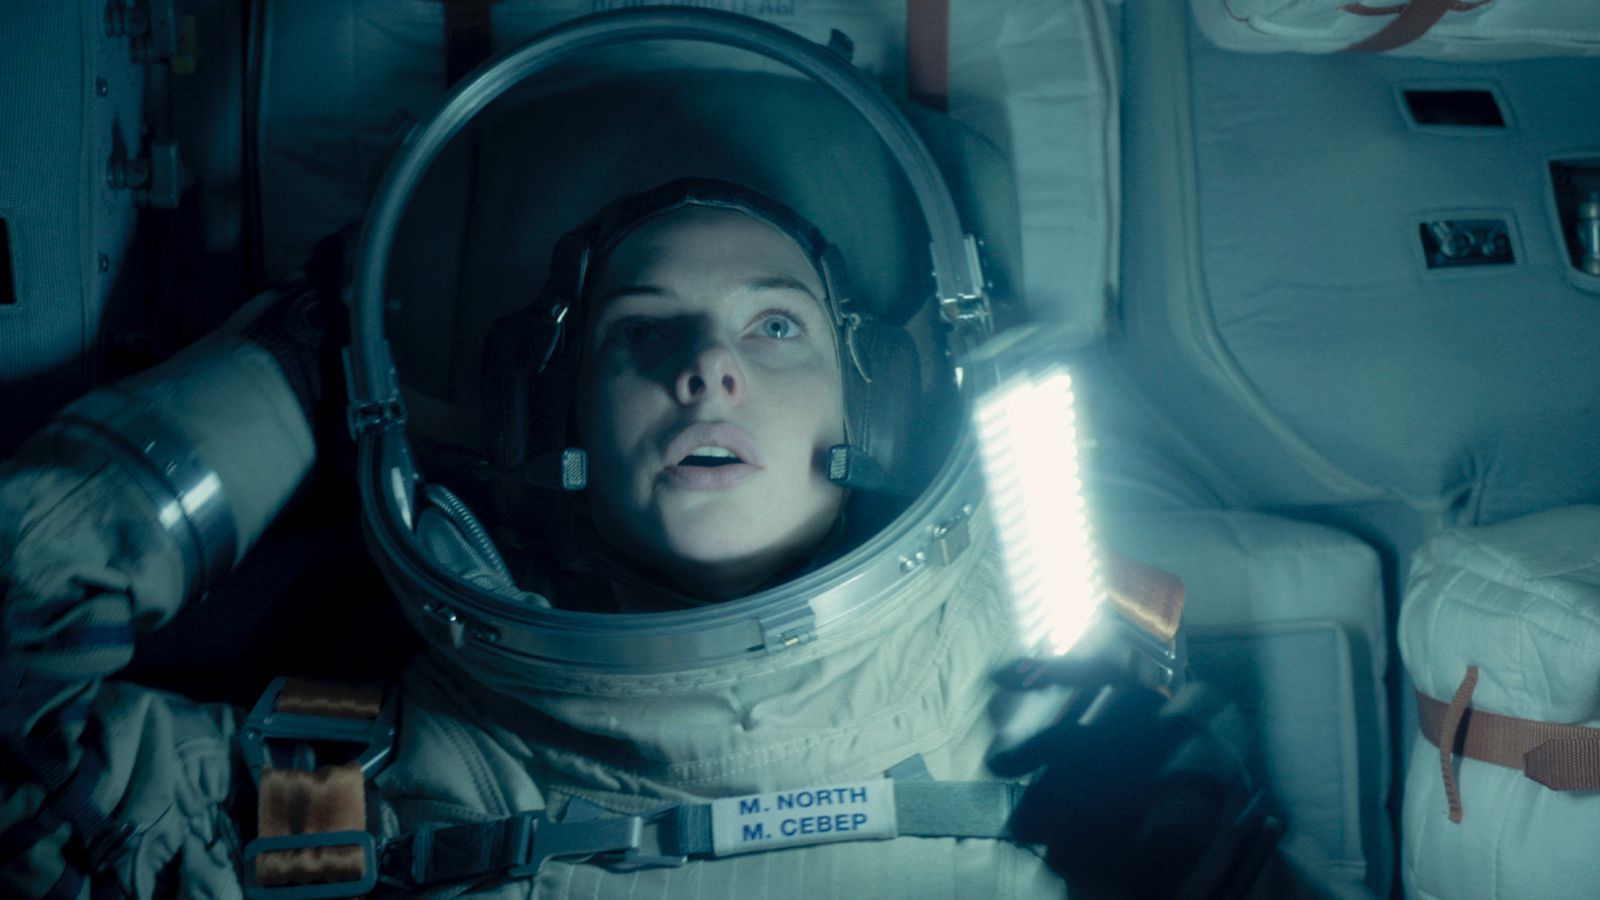 Life review: this space-horror movie is a creepy but ...